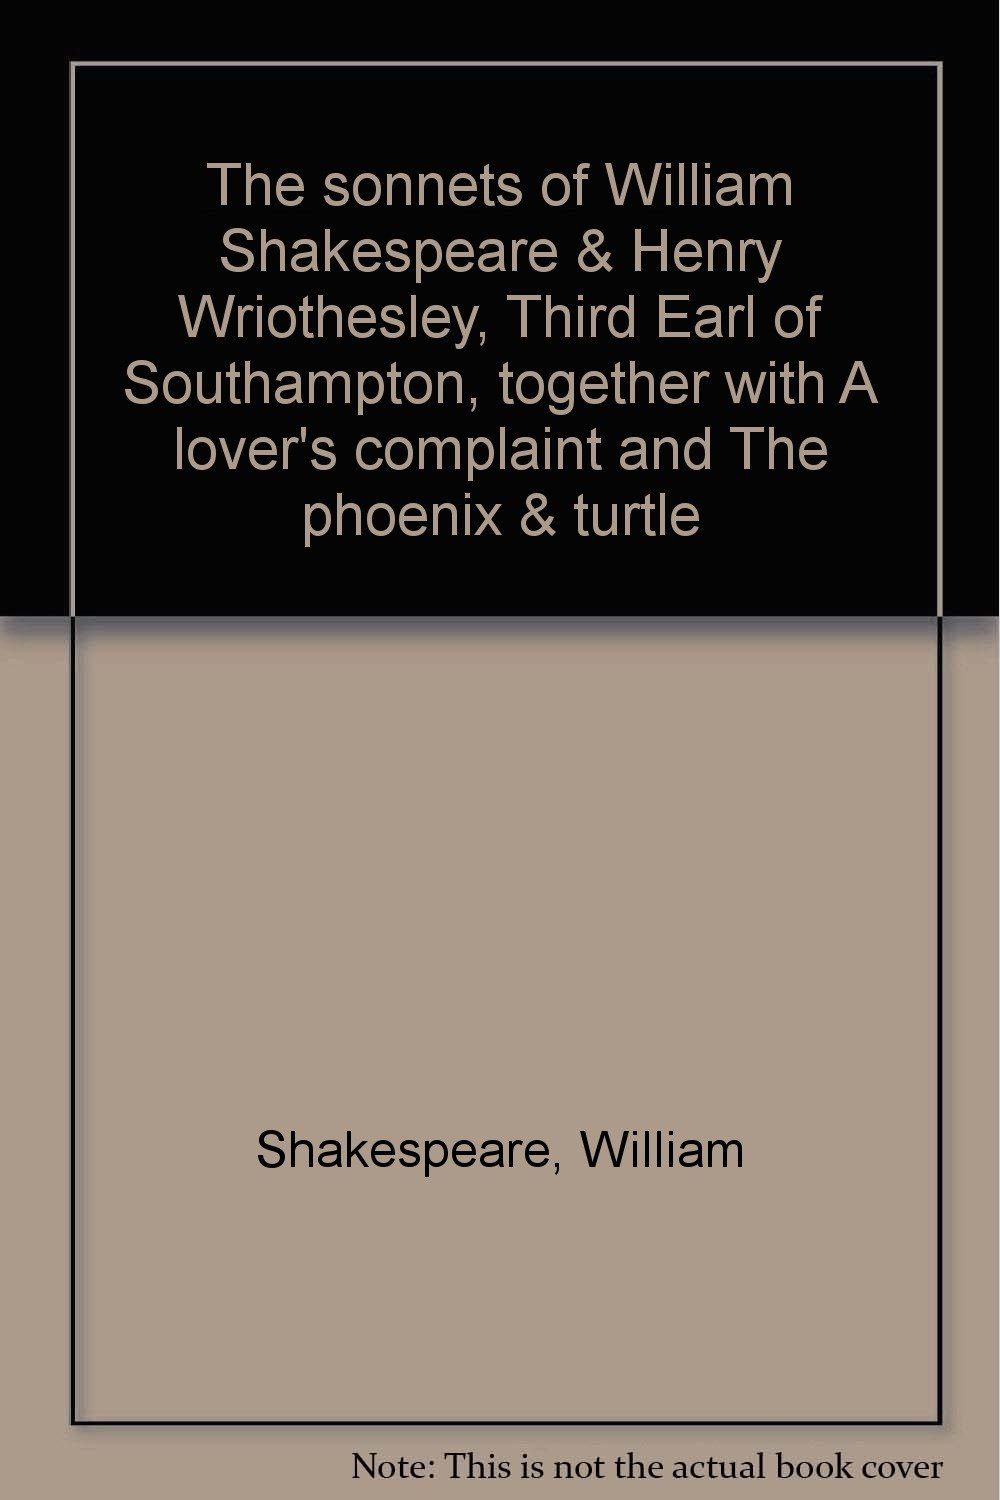 The sonnets of William Shakespeare & Henry Wriothesley, Third Earl